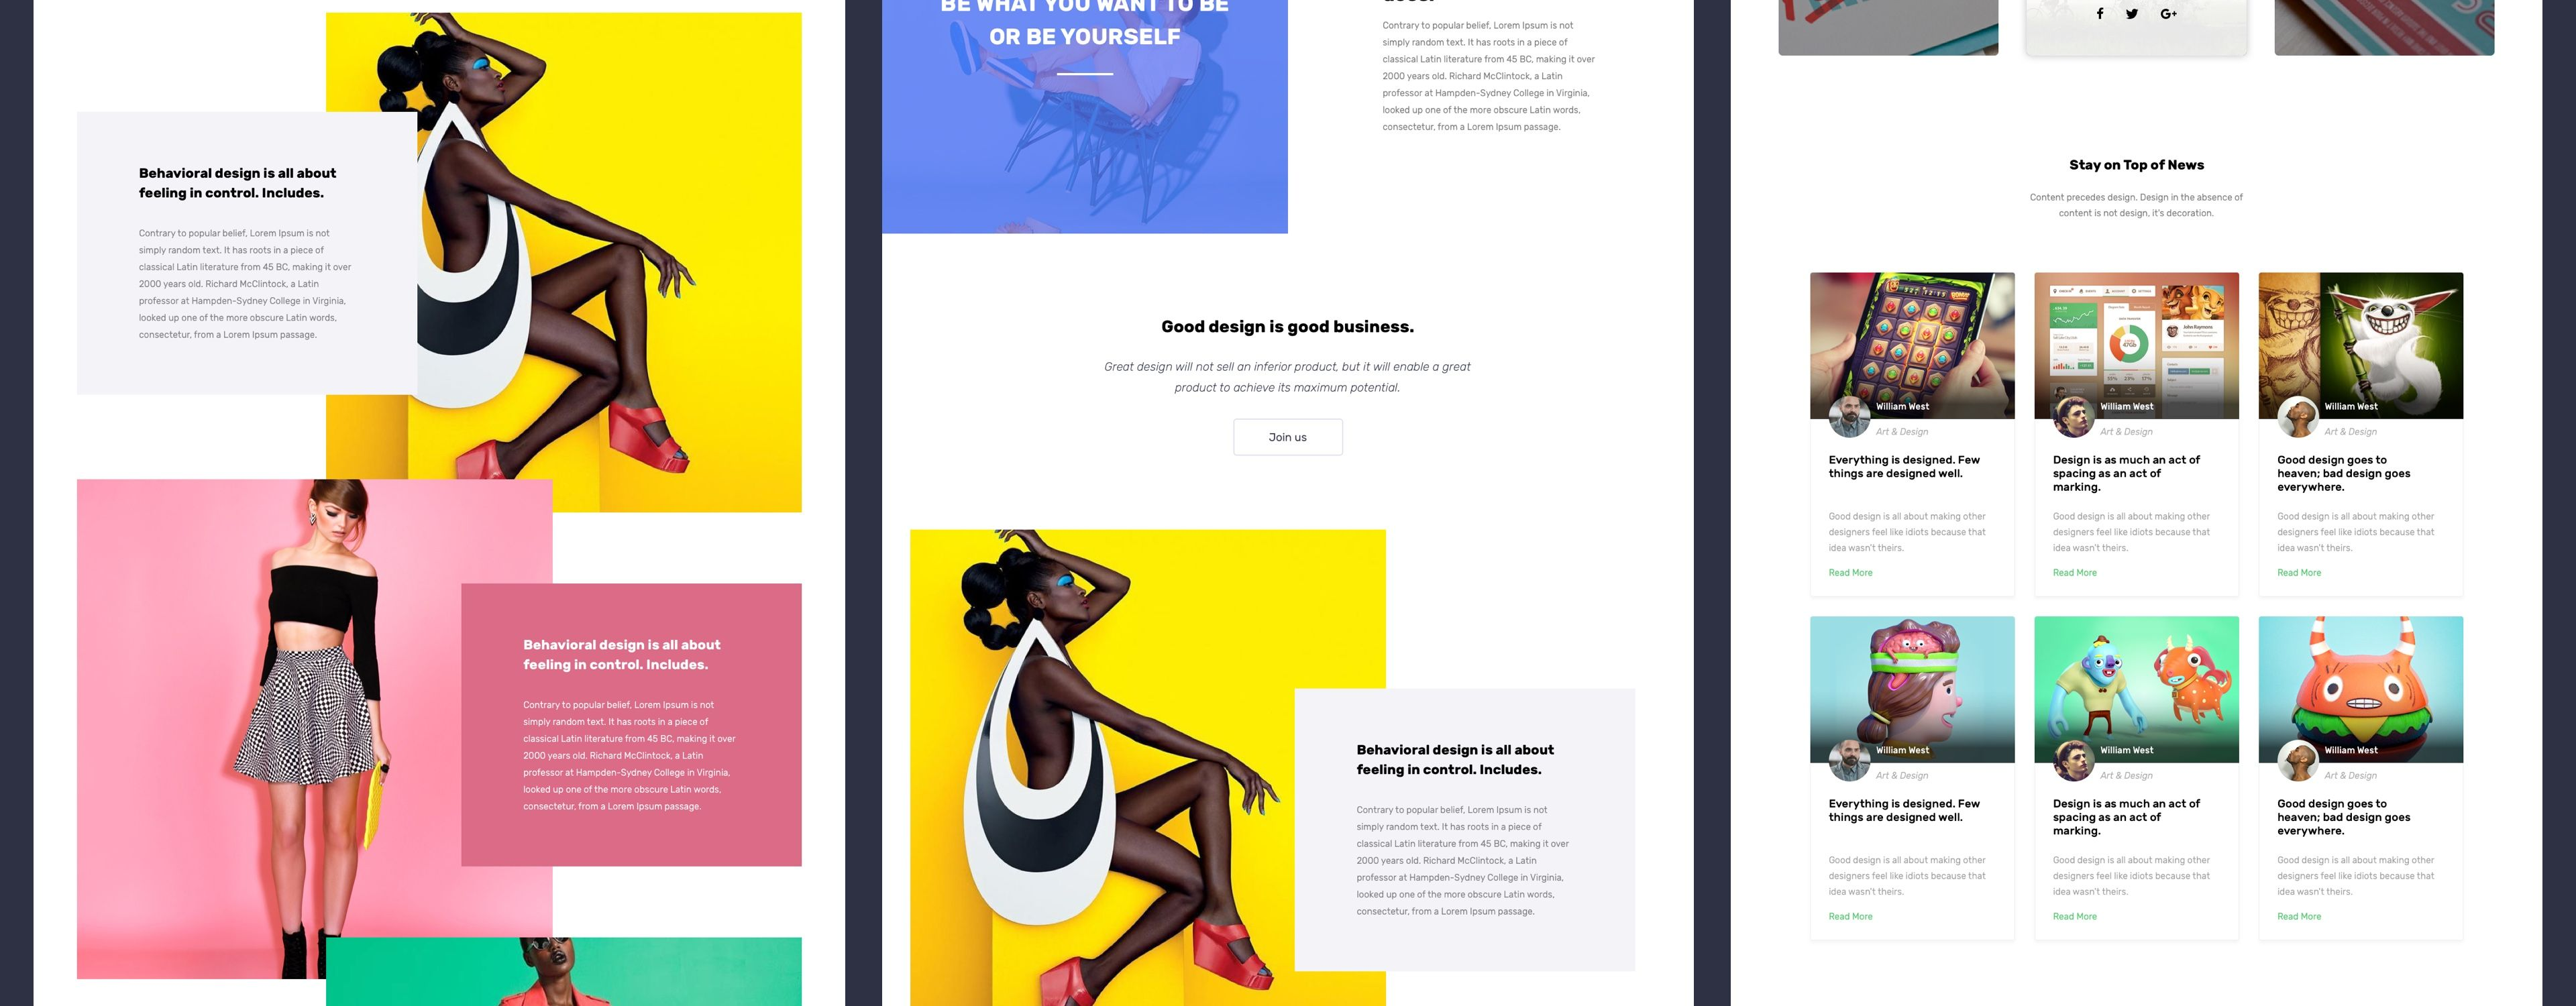 webdesign #web #design #UI #UX #inspiration #creative #layout ...